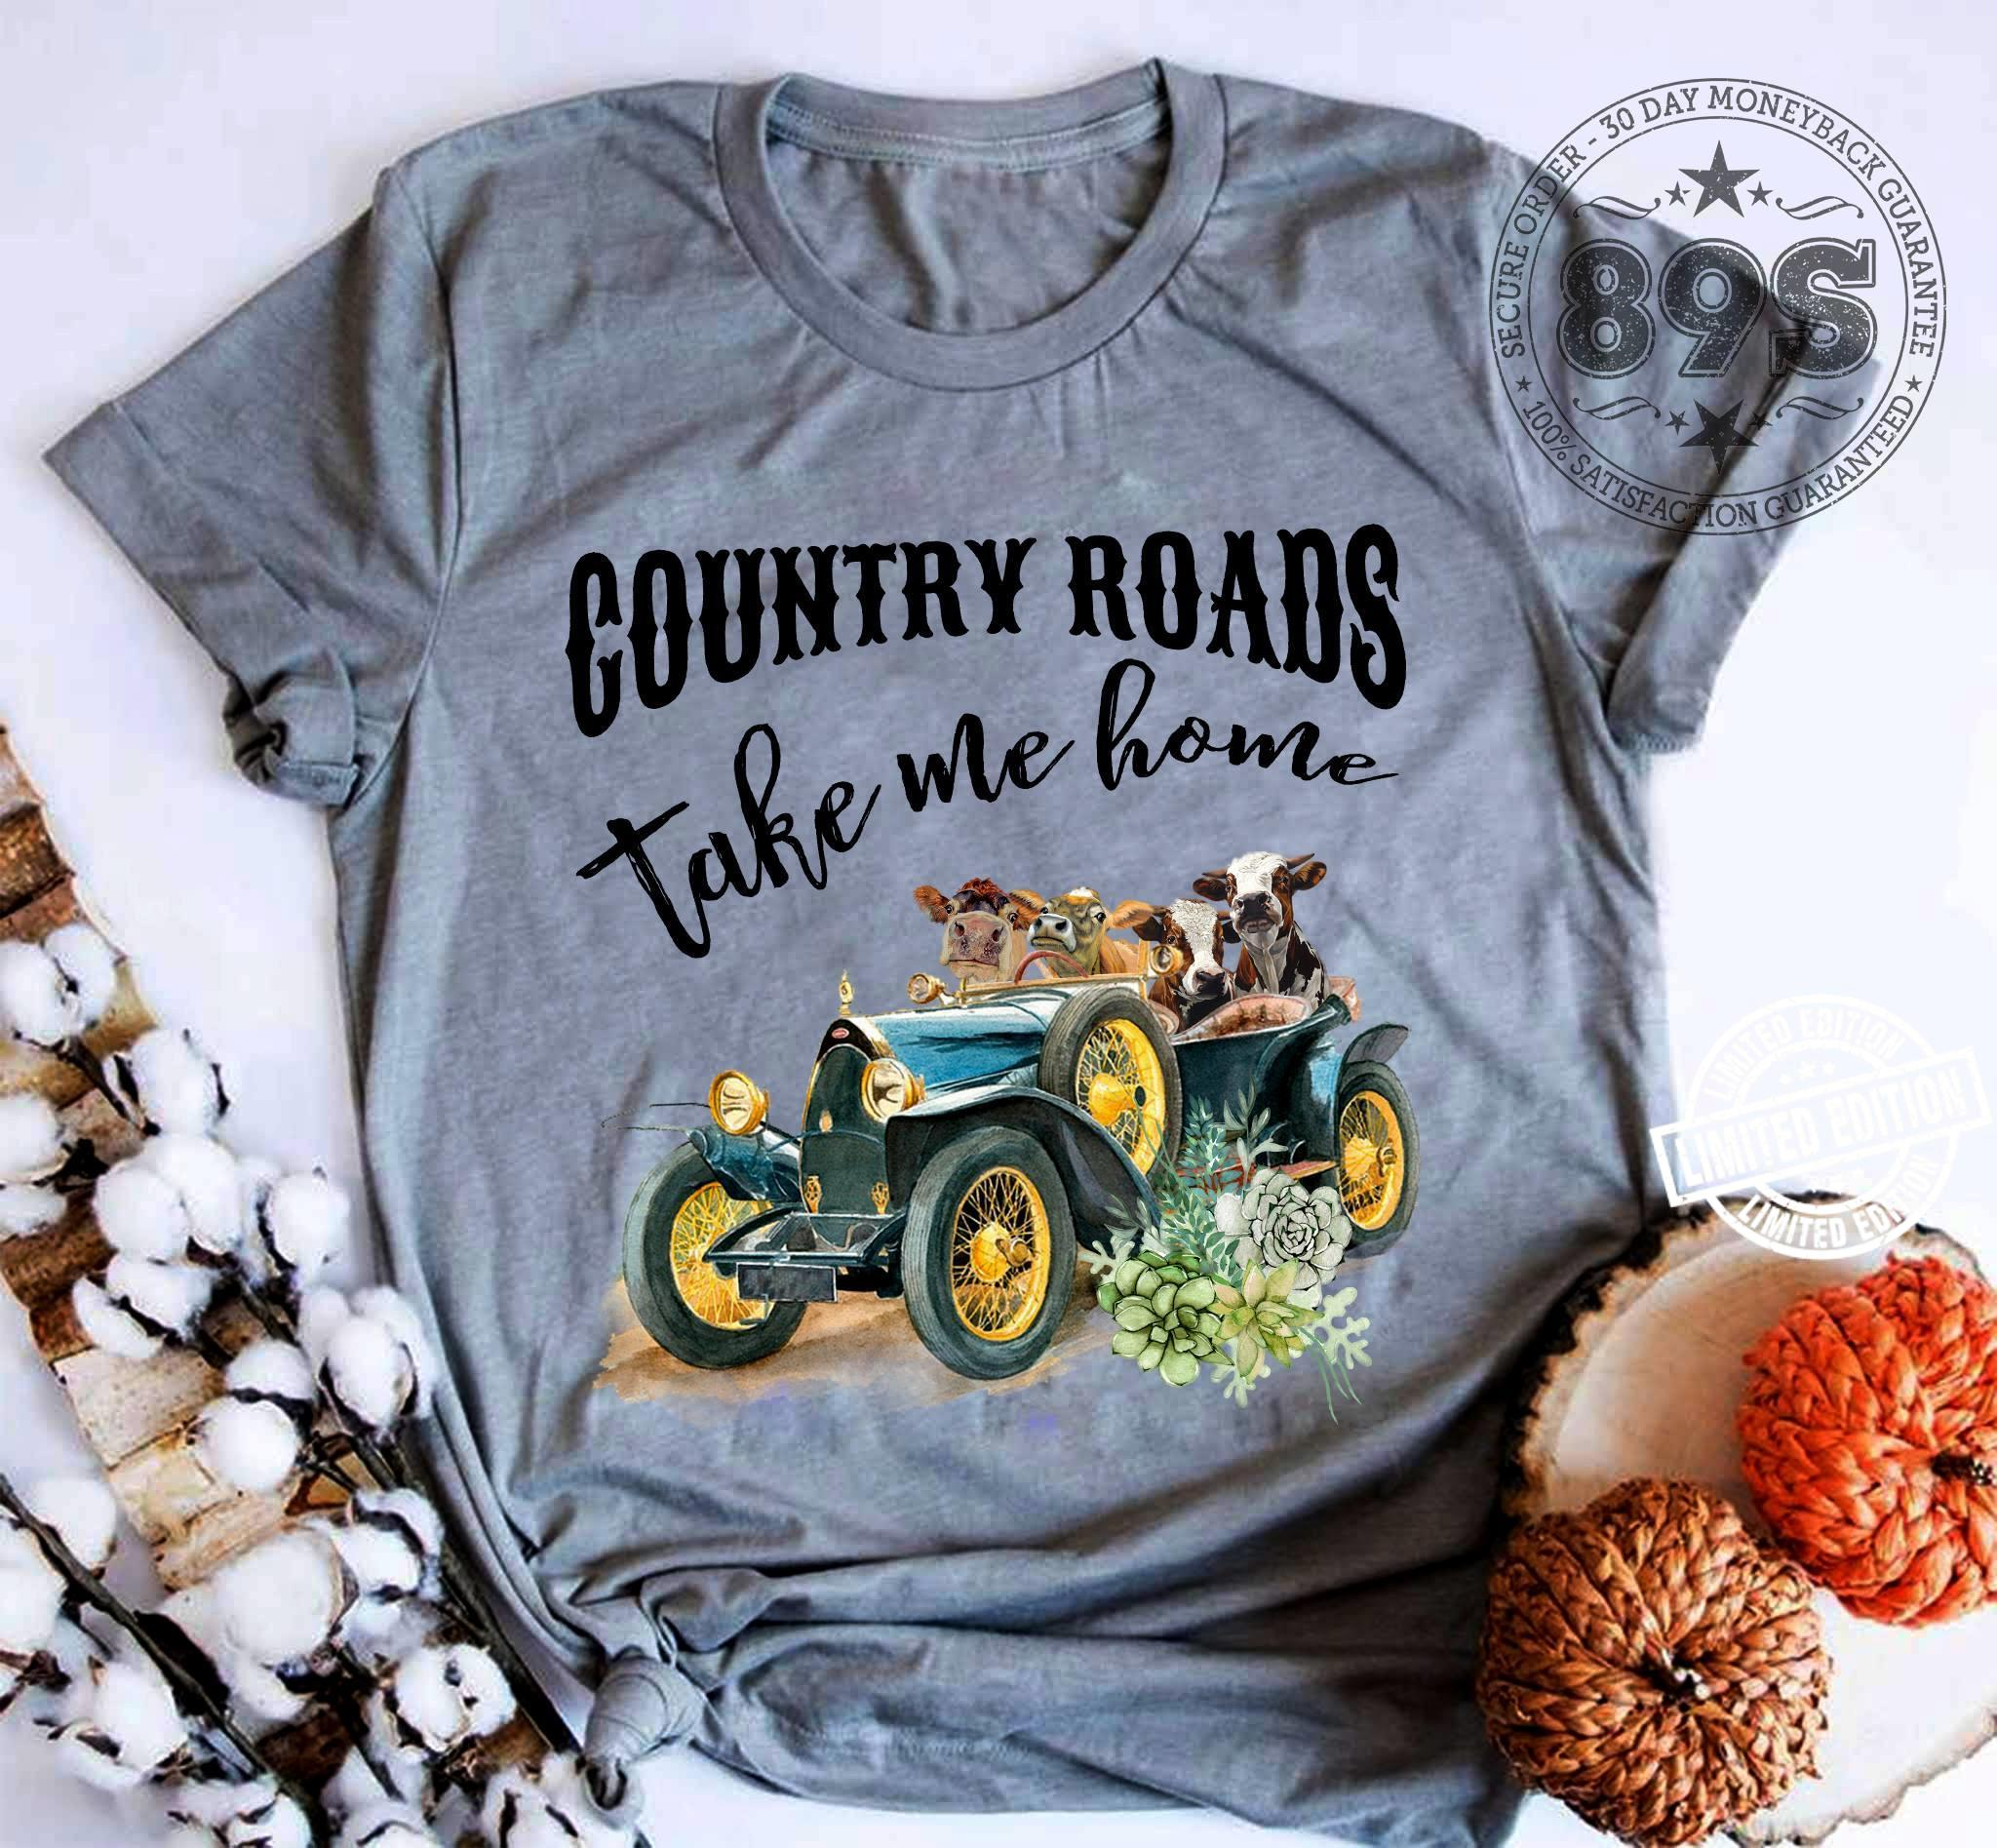 Country roads take me home shirt